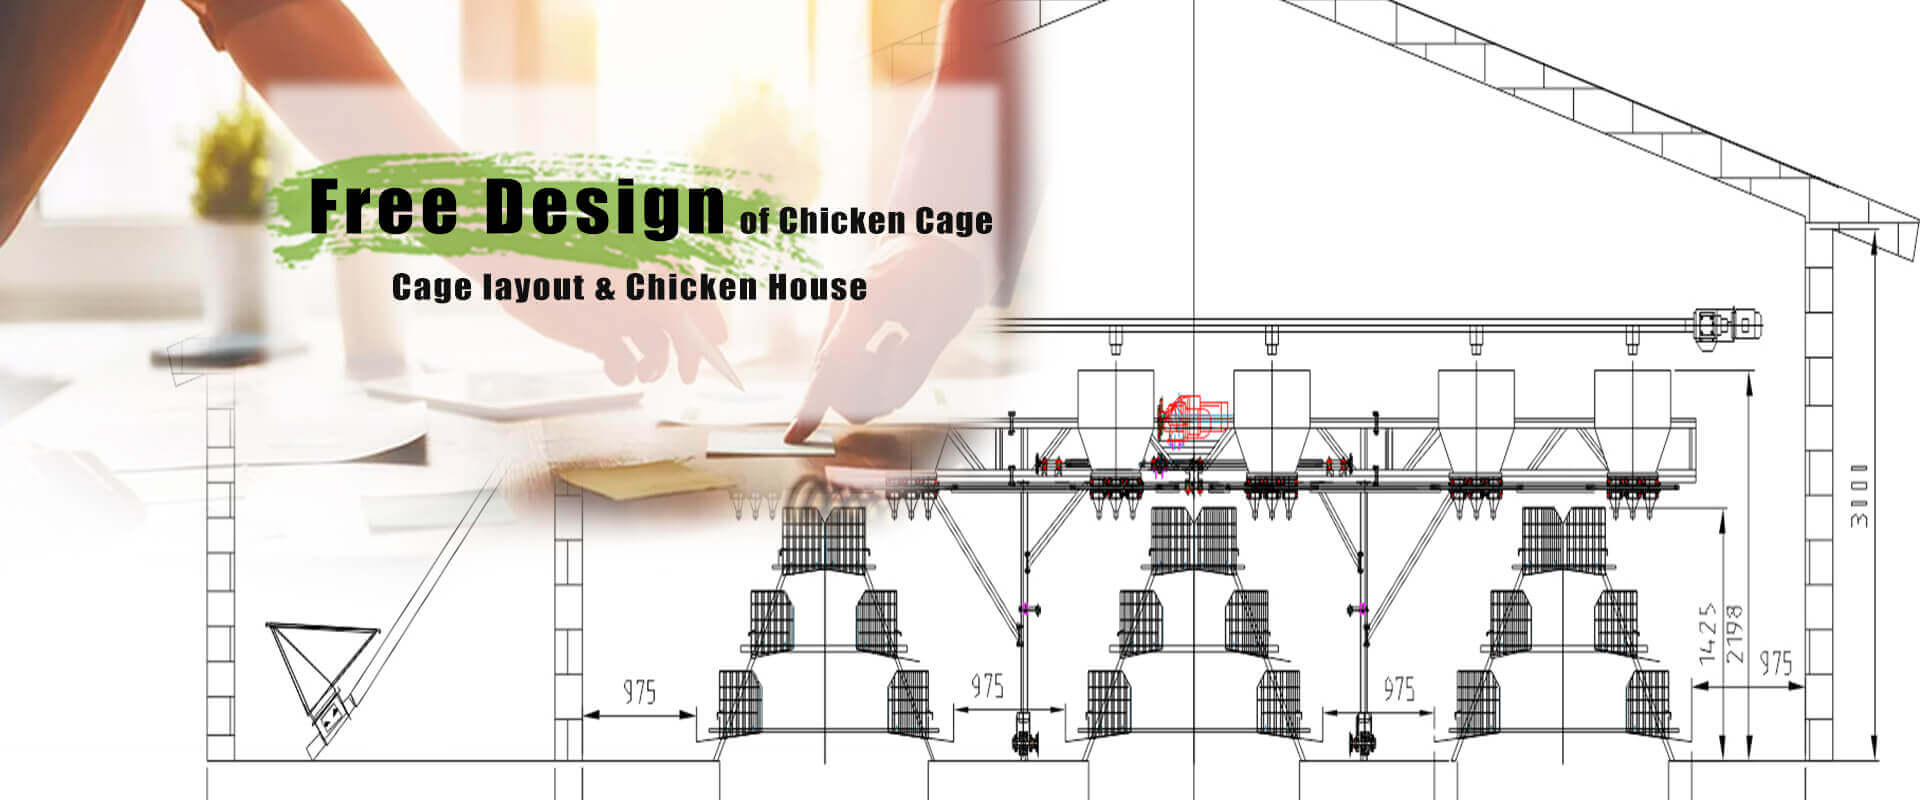 Poultry farm free layout design